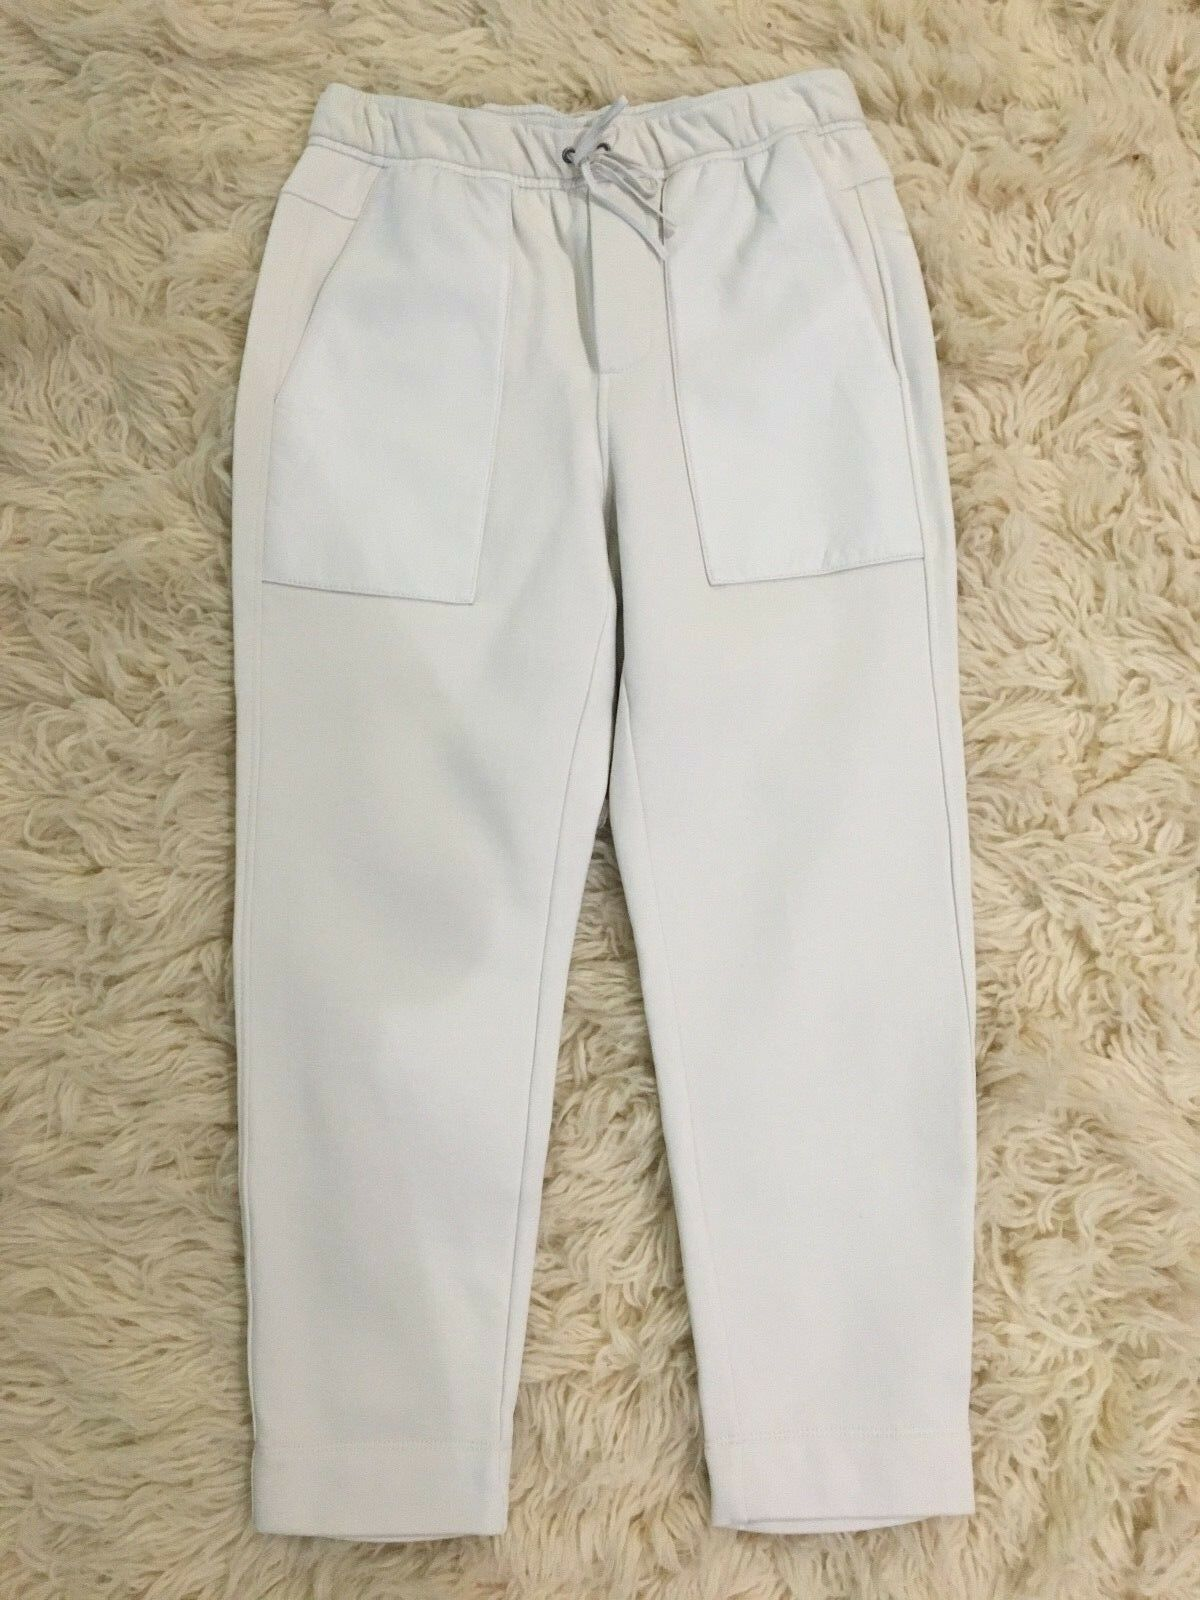 WOW    NWT OG  335 - Helmut Lang Weiß Cotton+Leather Jogger Pants Lined - SZ M